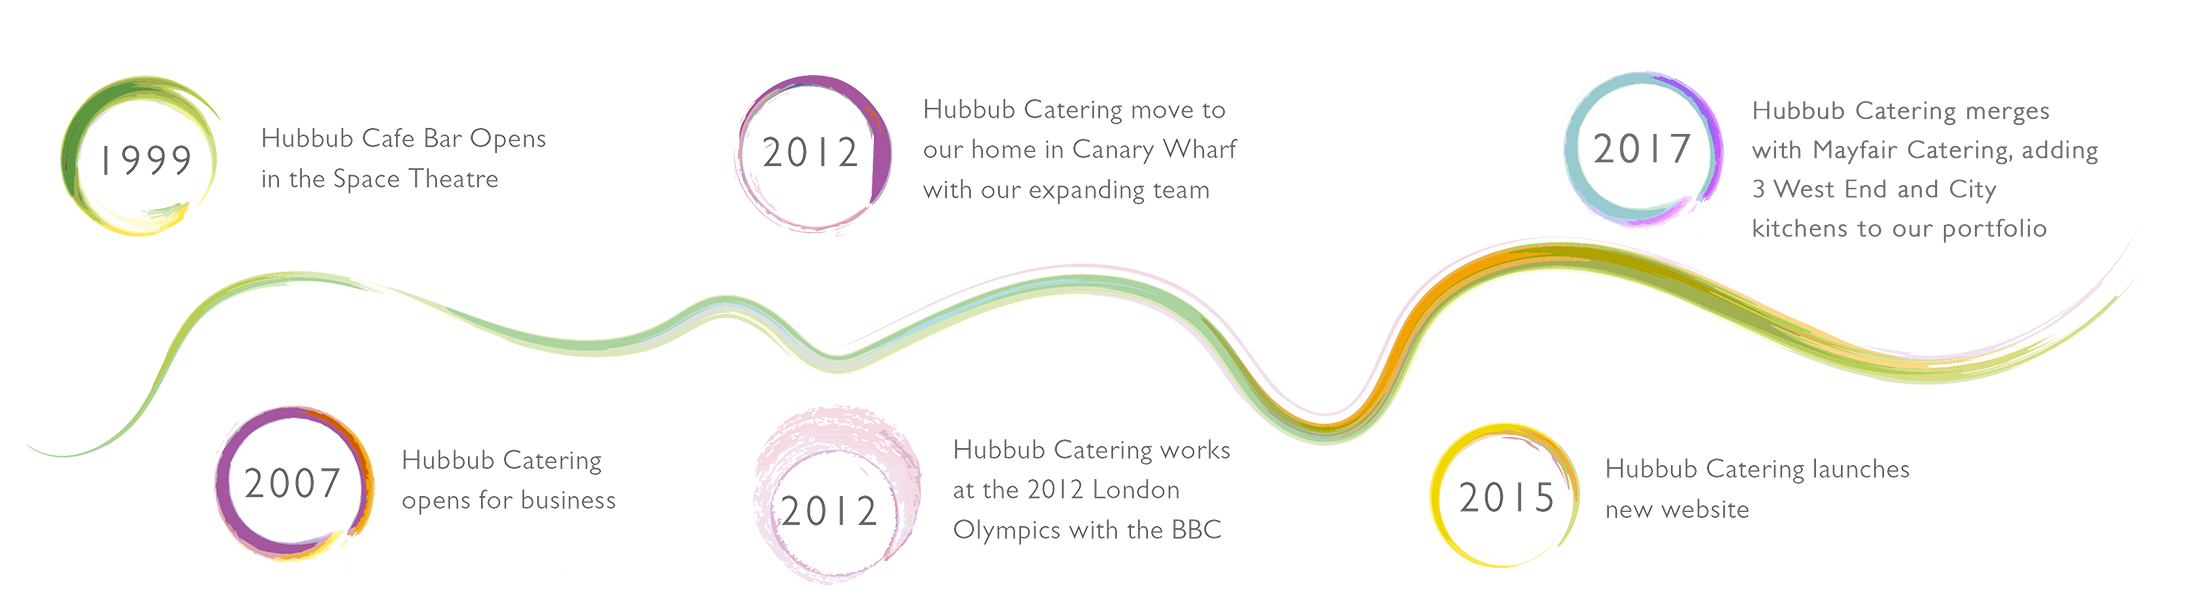 Hubbub Catering key dates timeline